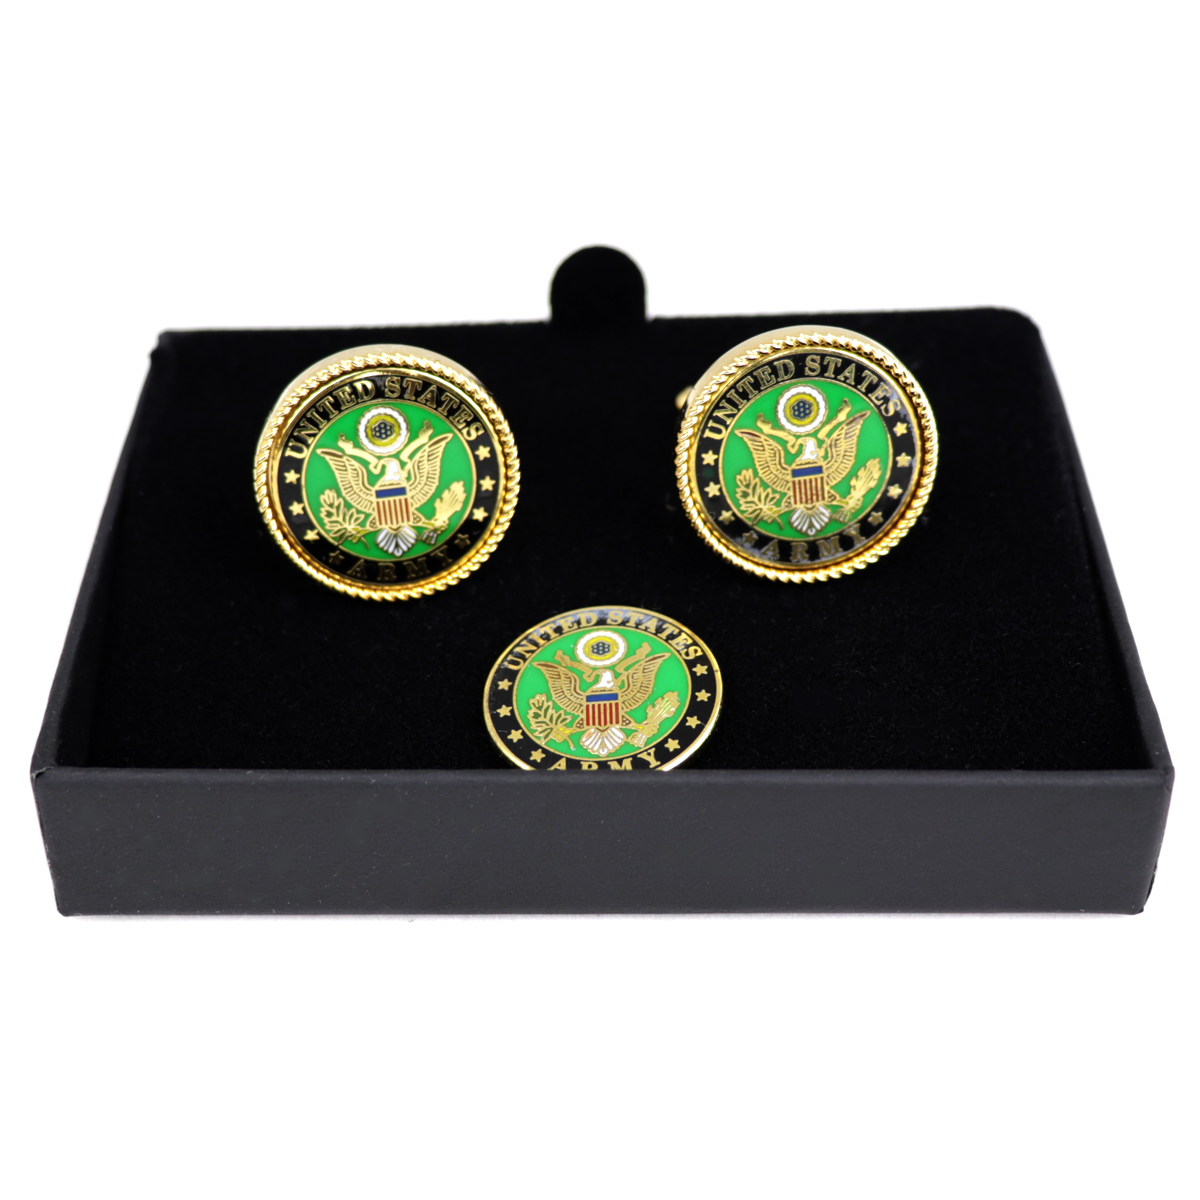 US ARMY Gold Rope Bezel Cuff links + lapel pin